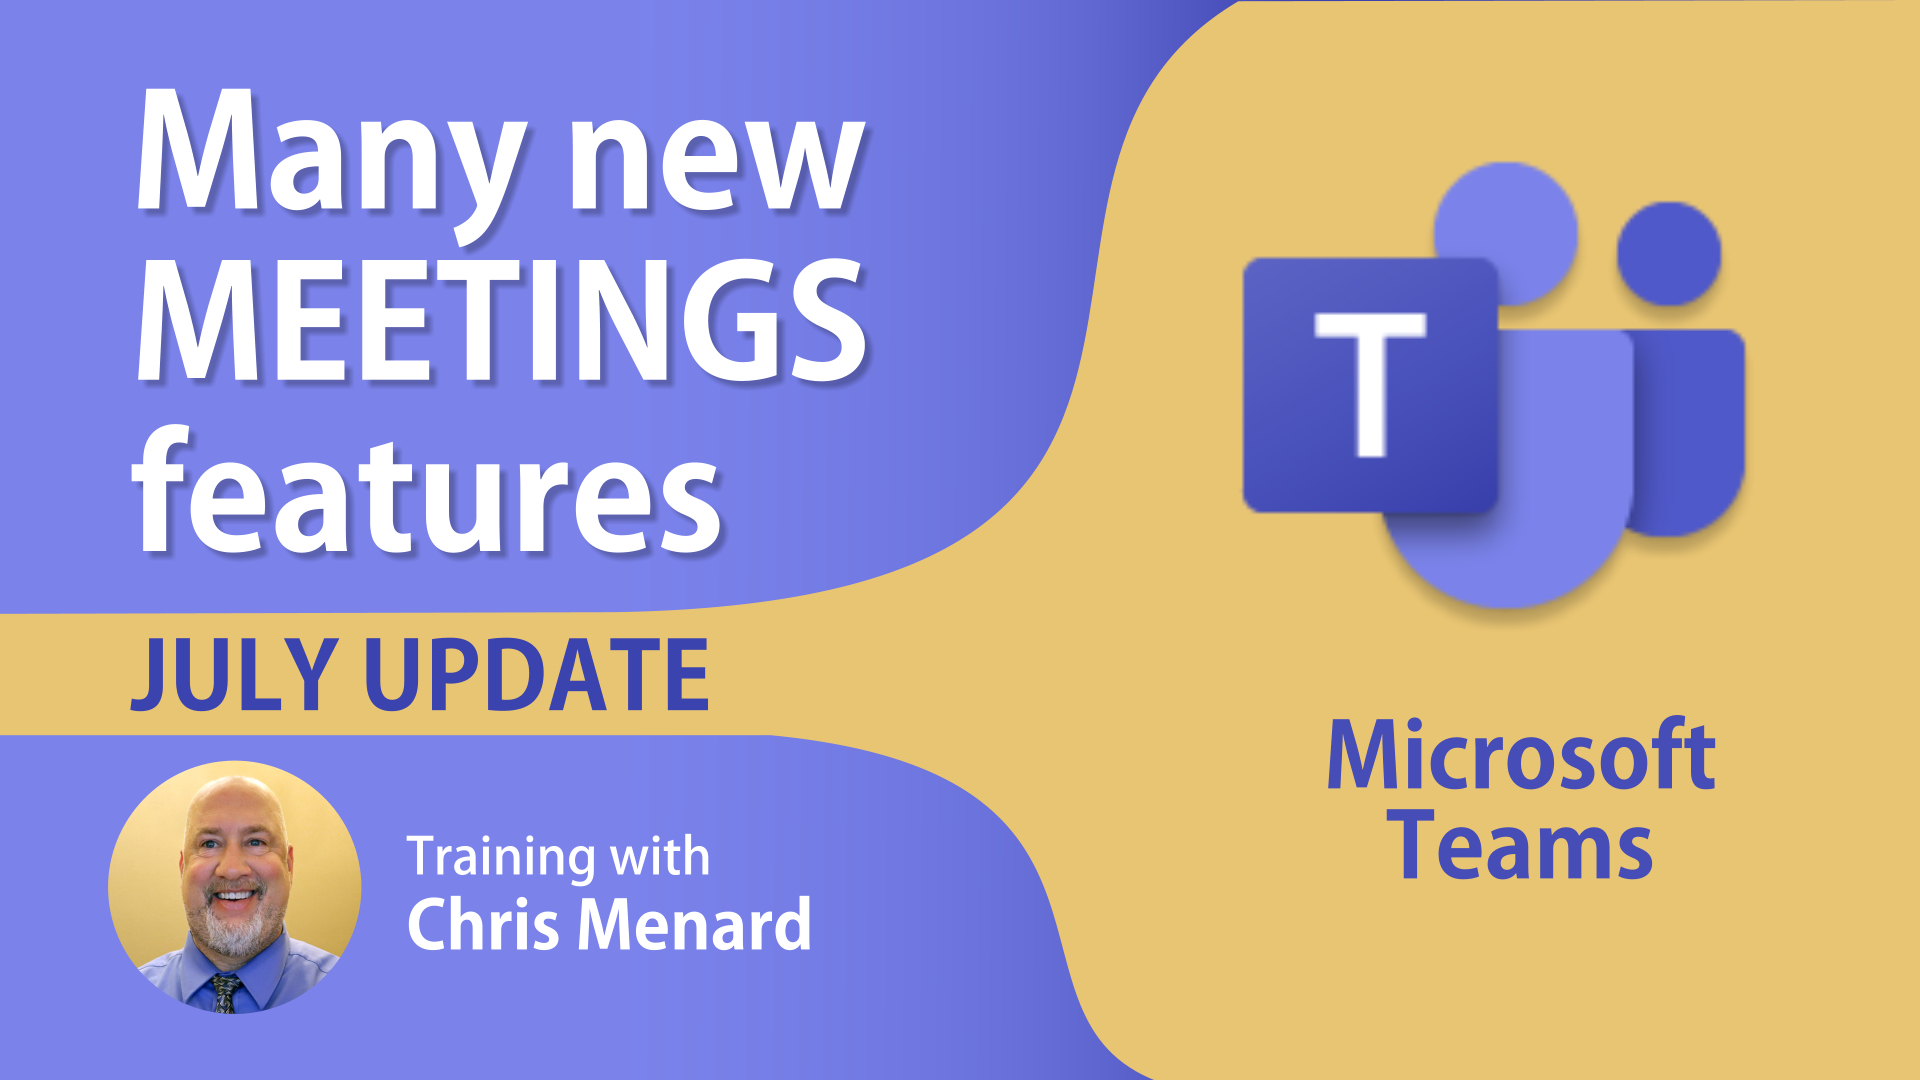 Microsoft Teams Meetings Update: New Features for Pop-out Meetings, Focus Mode, Meeting Notes and more | July 2020